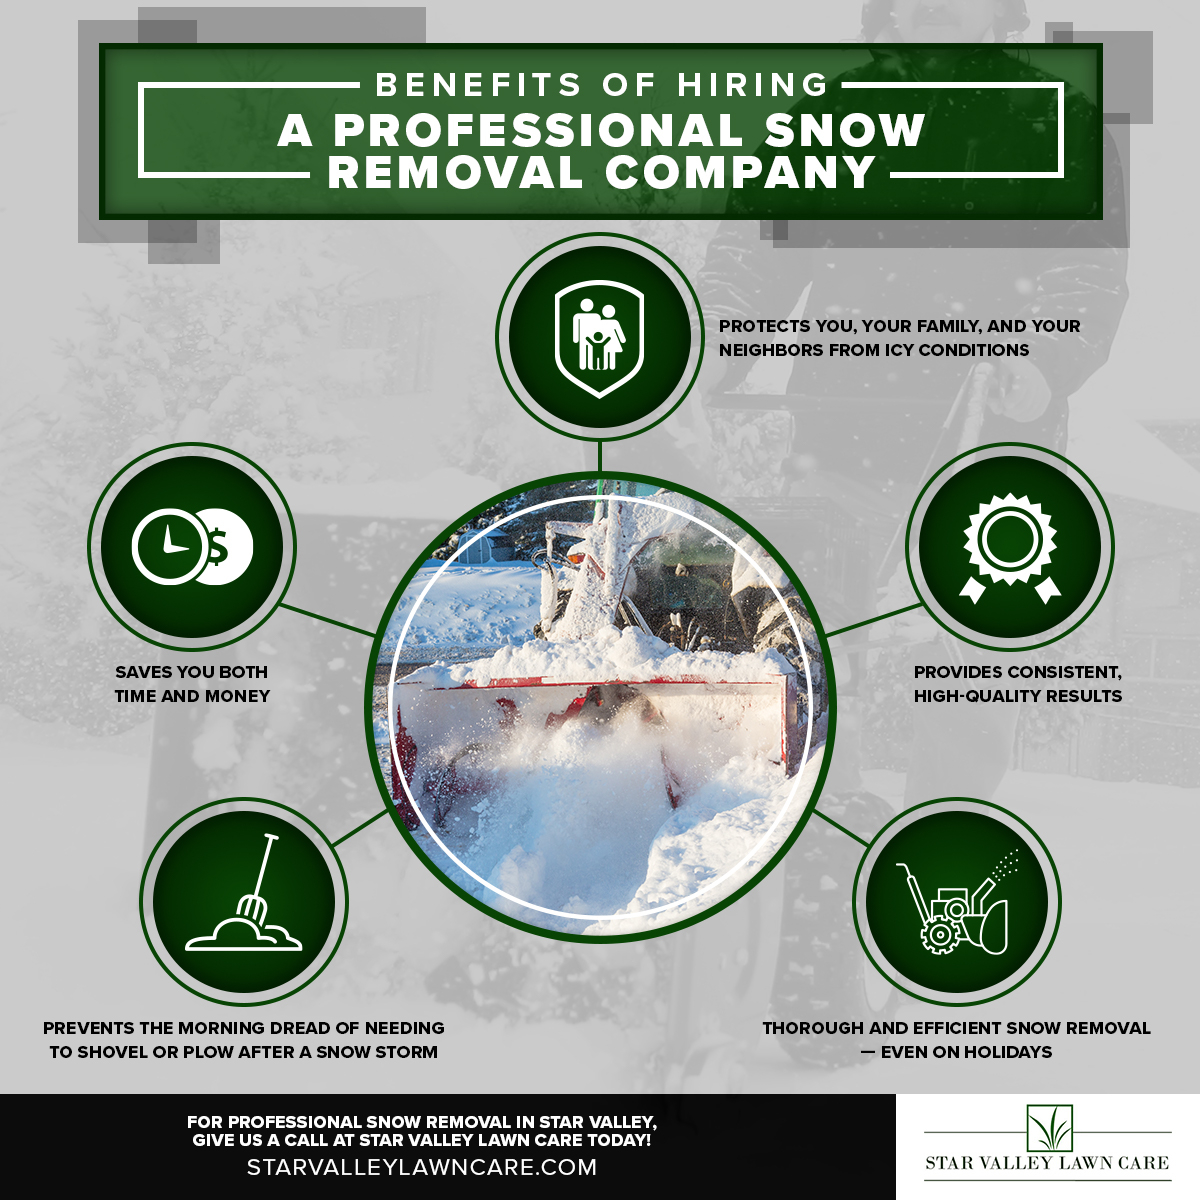 Benefits of Hiring a Professional Snow Removal Company infographic.jpg